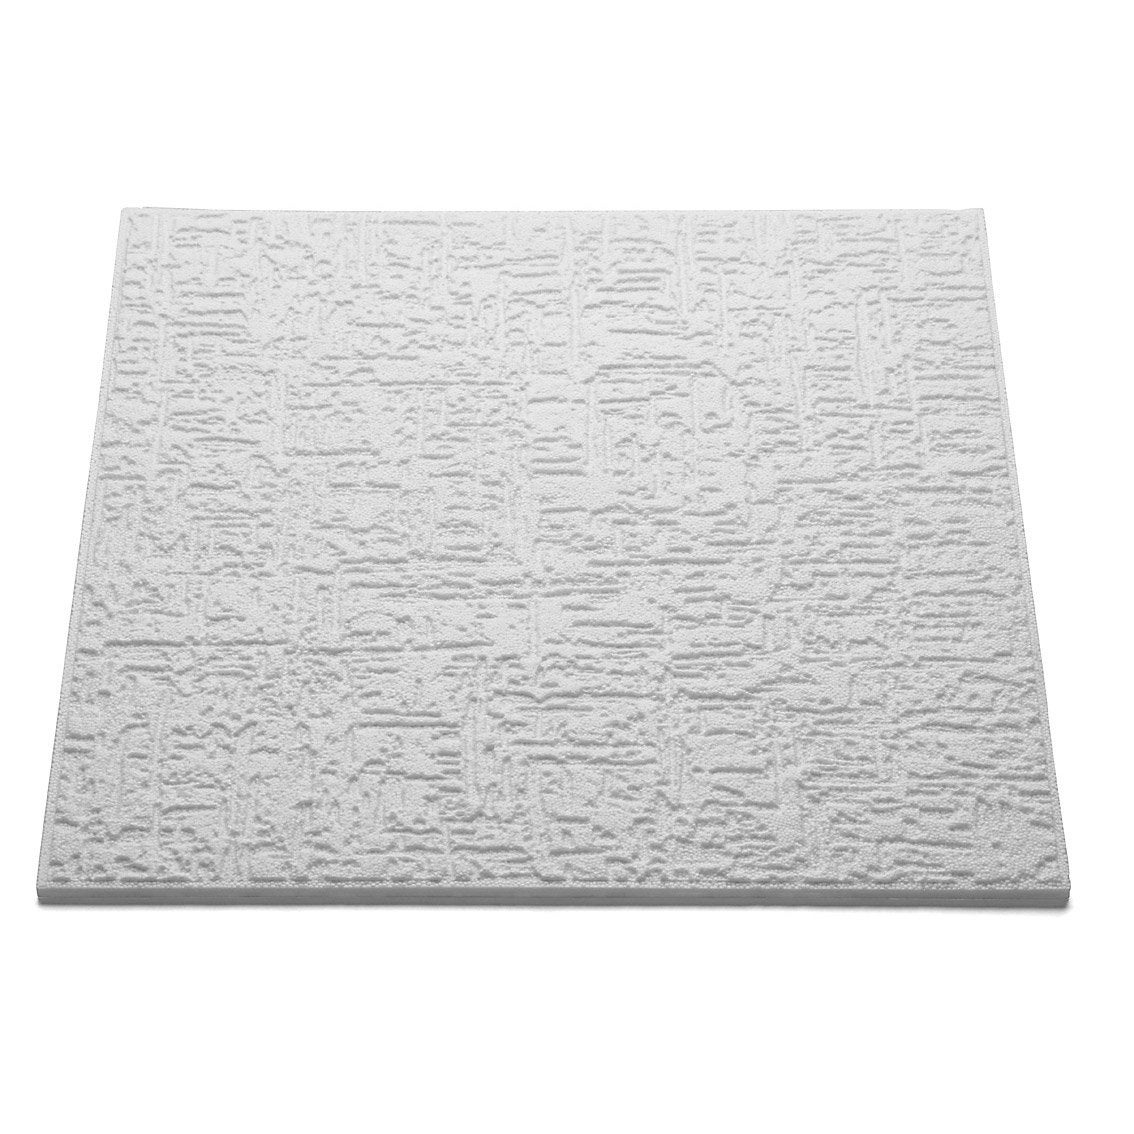 Dalle t 102 50 x 50 cm leroy merlin - Plaque faux plafond ...